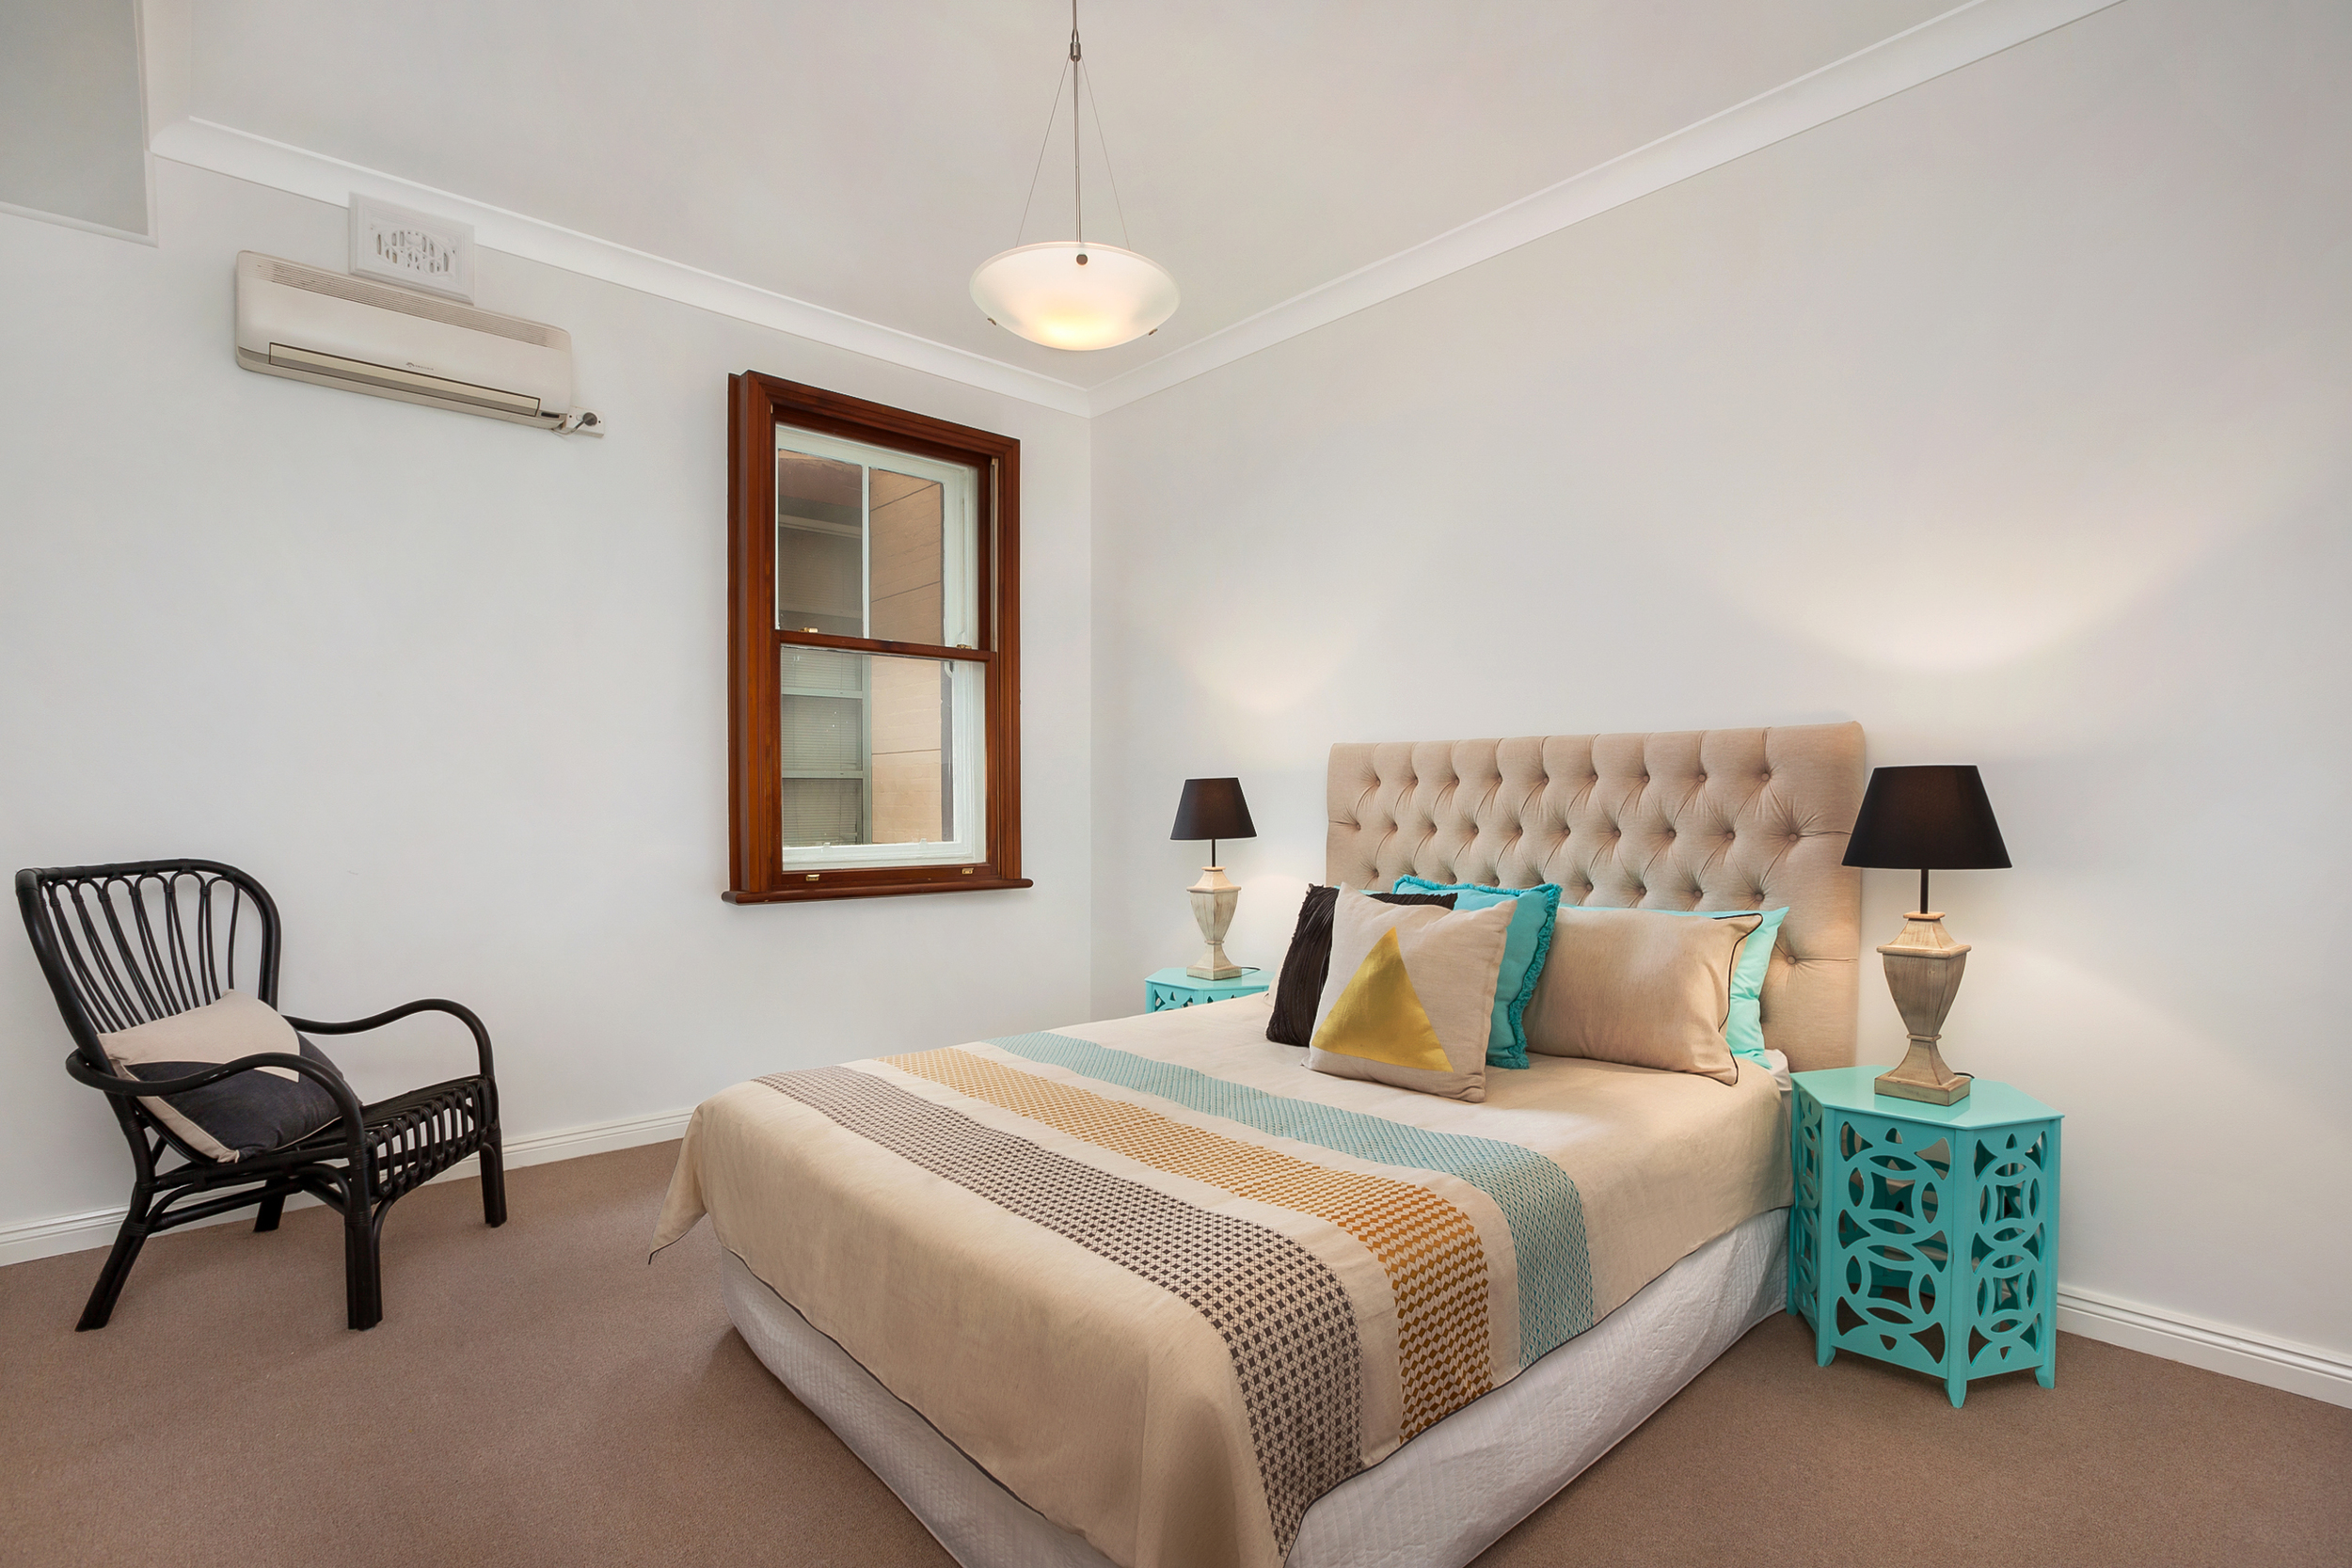 Middleton-St-3-24-Petersham-Bed.jpg